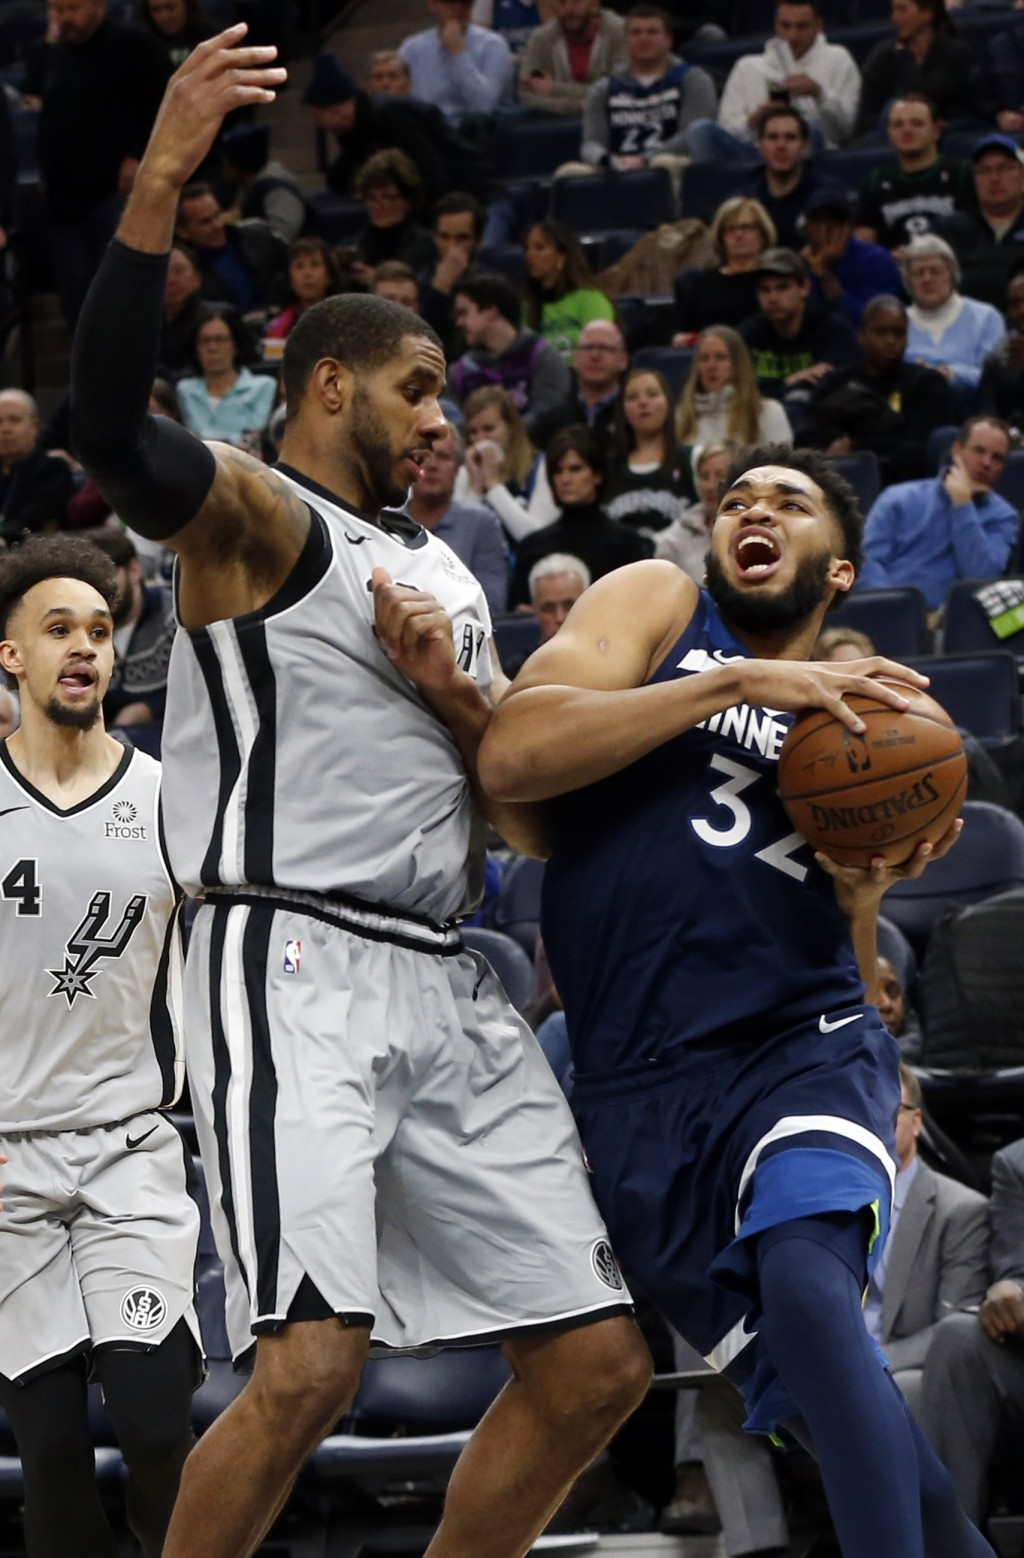 Minnesota Timberwolves' Karl-Anthony Towns, right, drives around San Antonio Spurs' LaMarcus Aldridge during the second half of an NBA basketball game